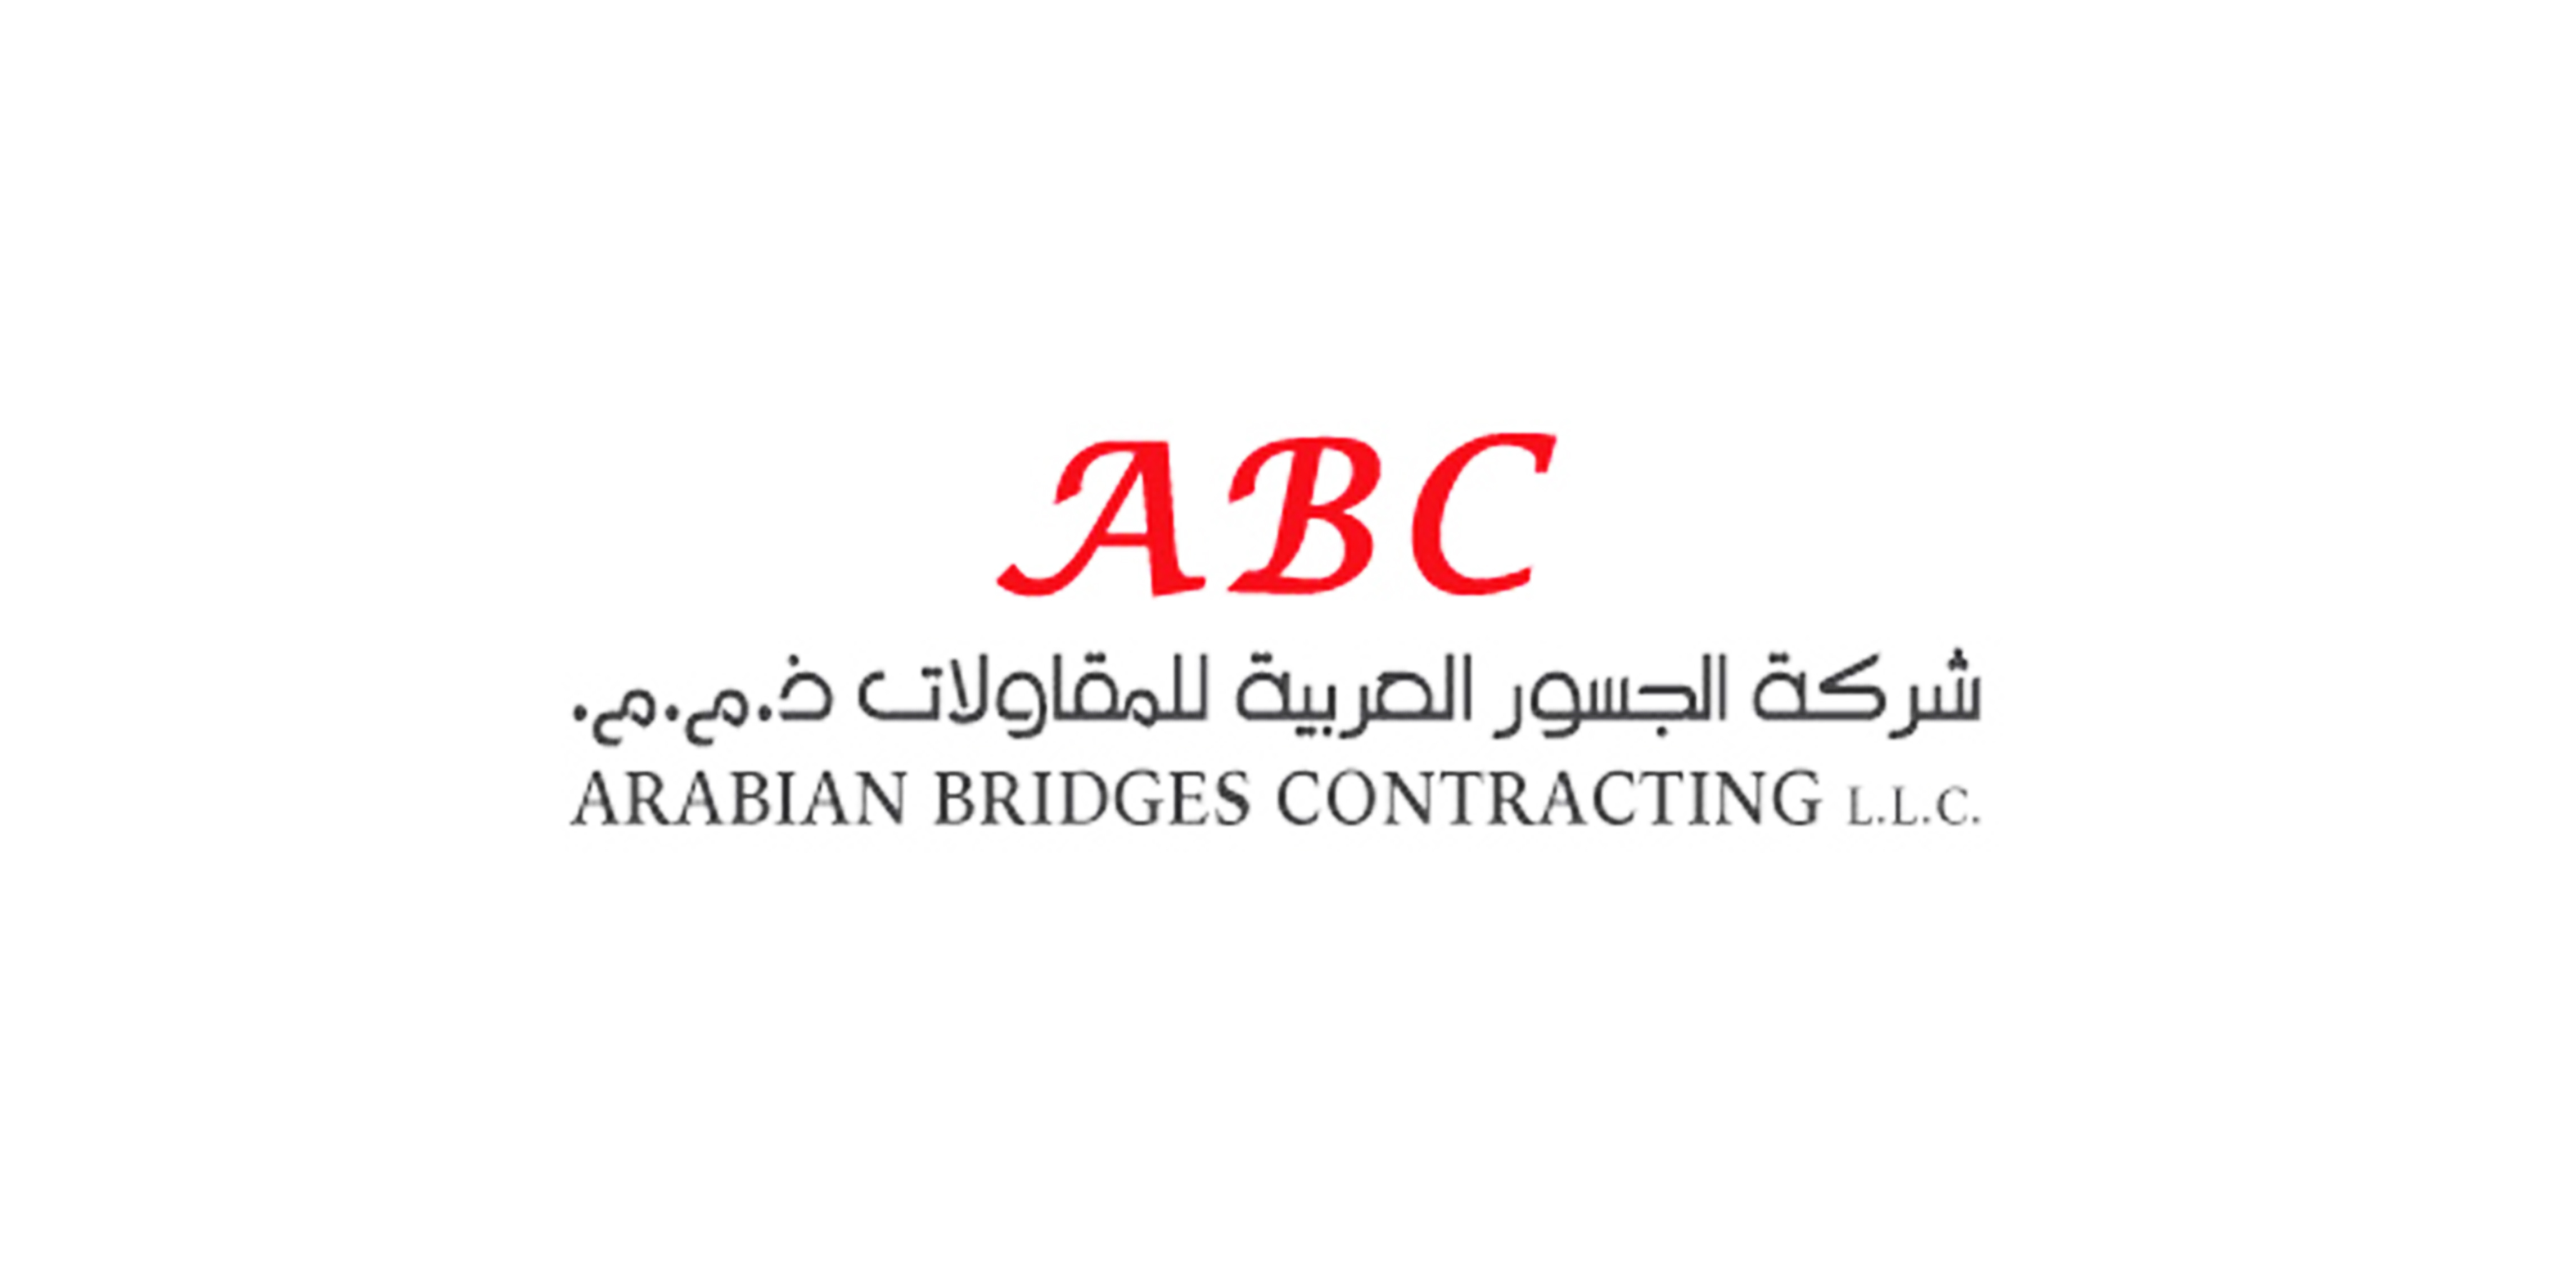 Arabian Bridges Contracting L.L.C